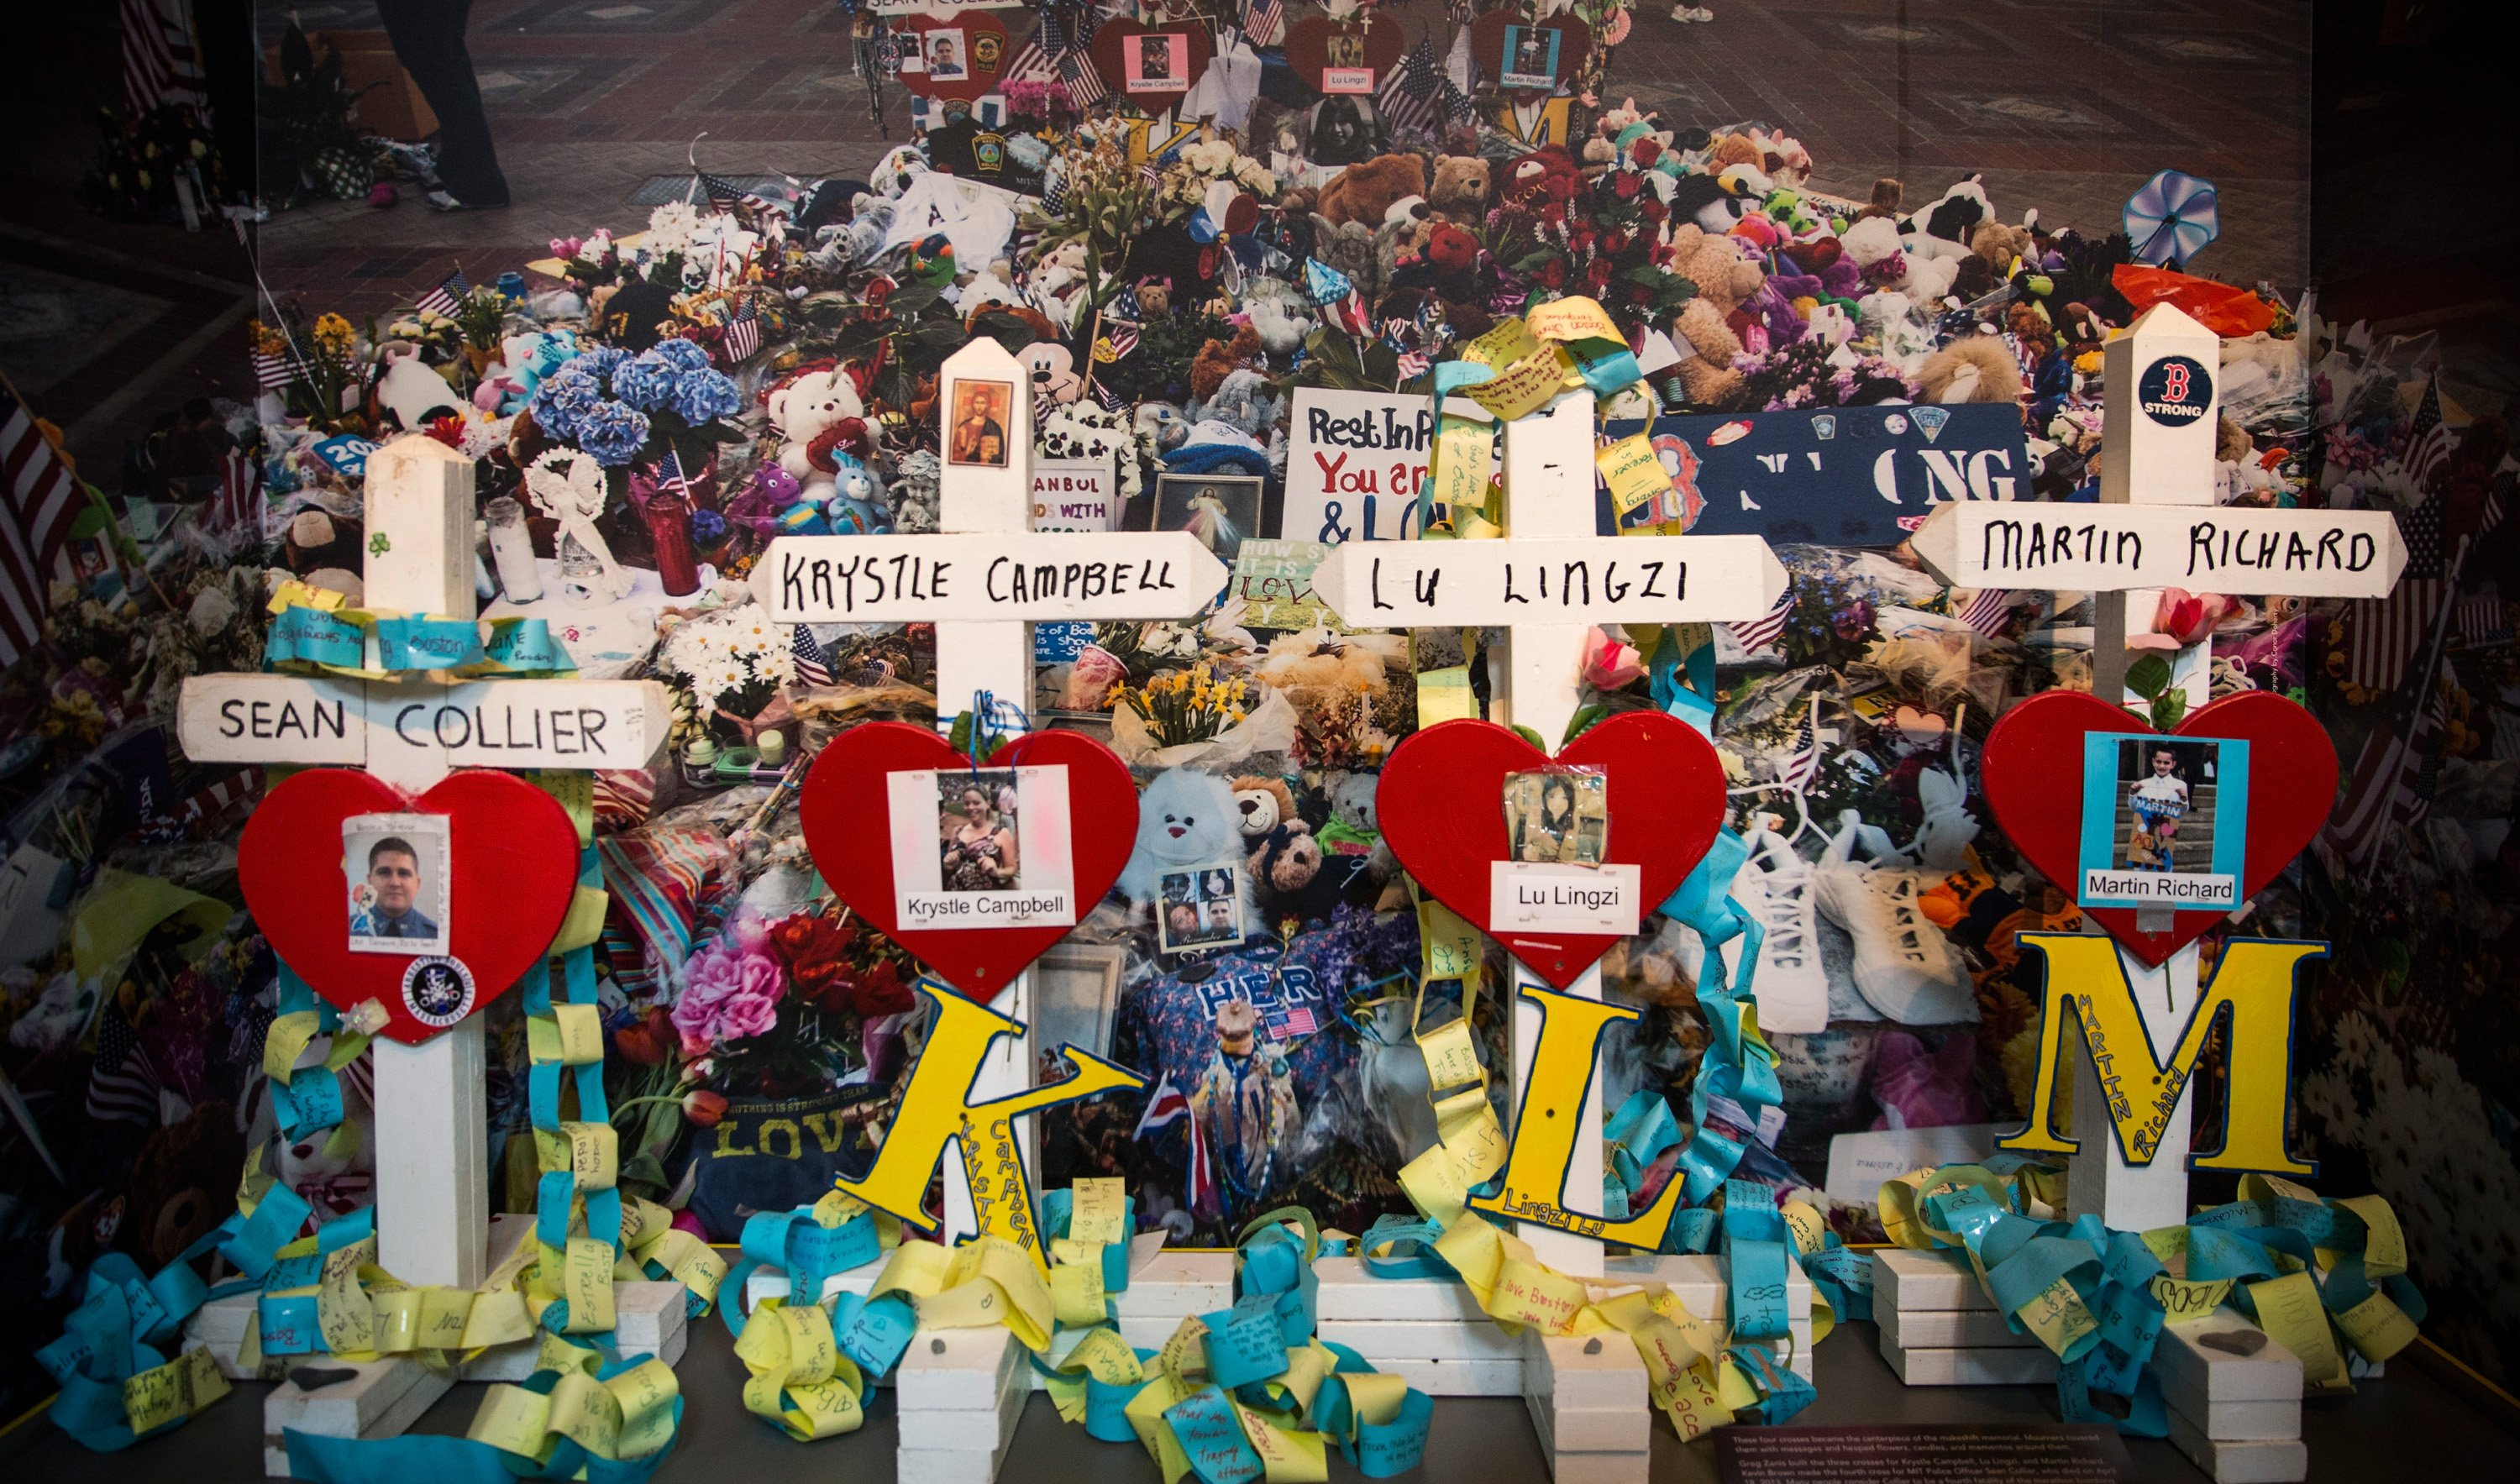 Crosses bearing the names of victims of the 2013 Boston Marathon bombing are displayed in a memorial at the Boston Public Library on April 14, 2014 in Boston.